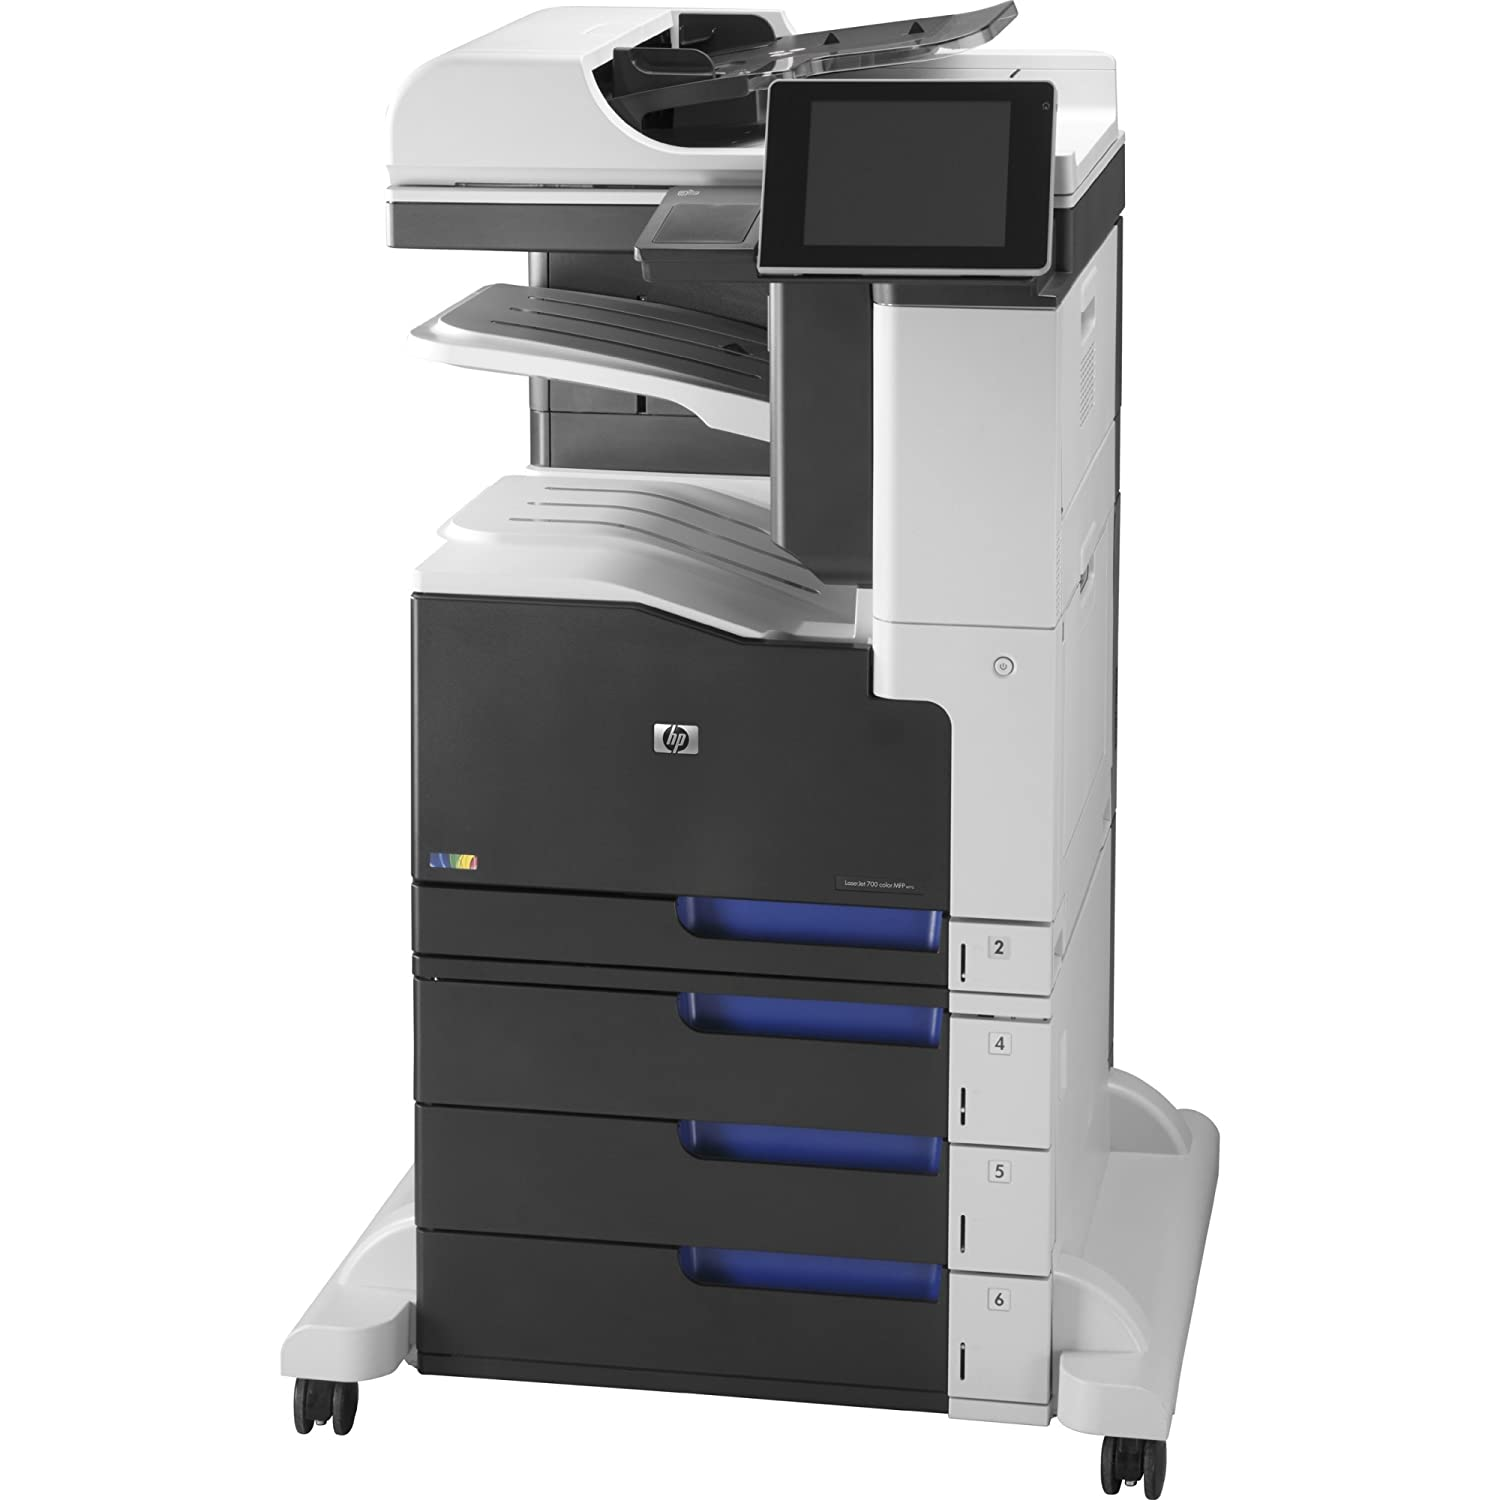 HP MFP M775 WINDOWS 8 X64 TREIBER